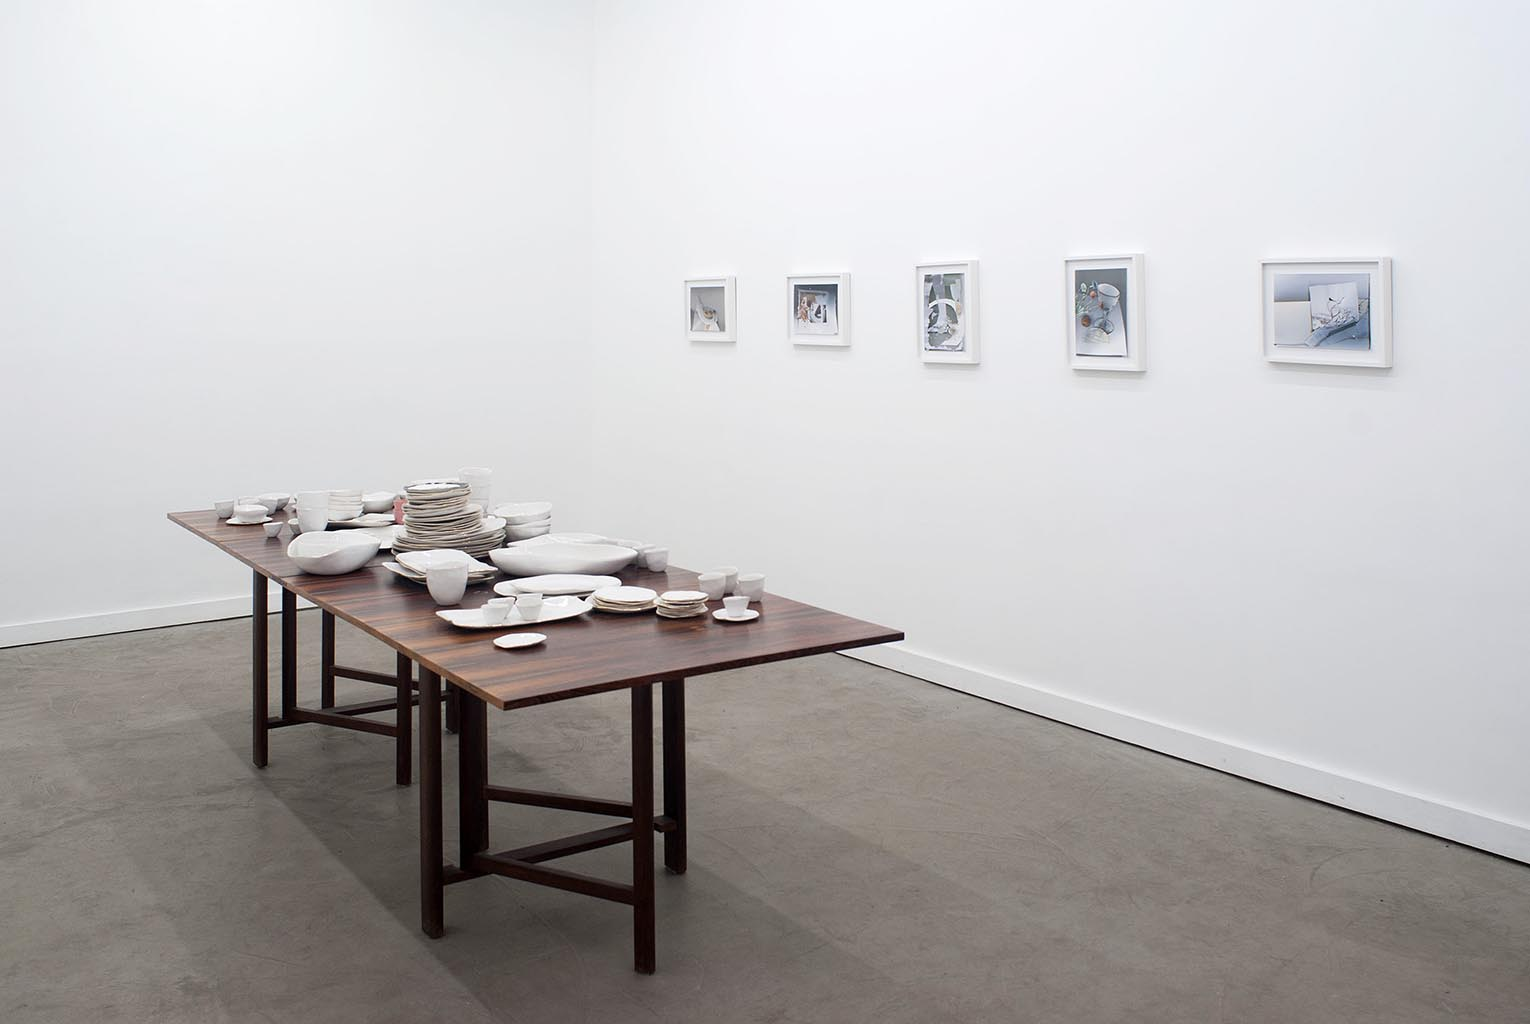 Tableware and Some Pictures (Install)